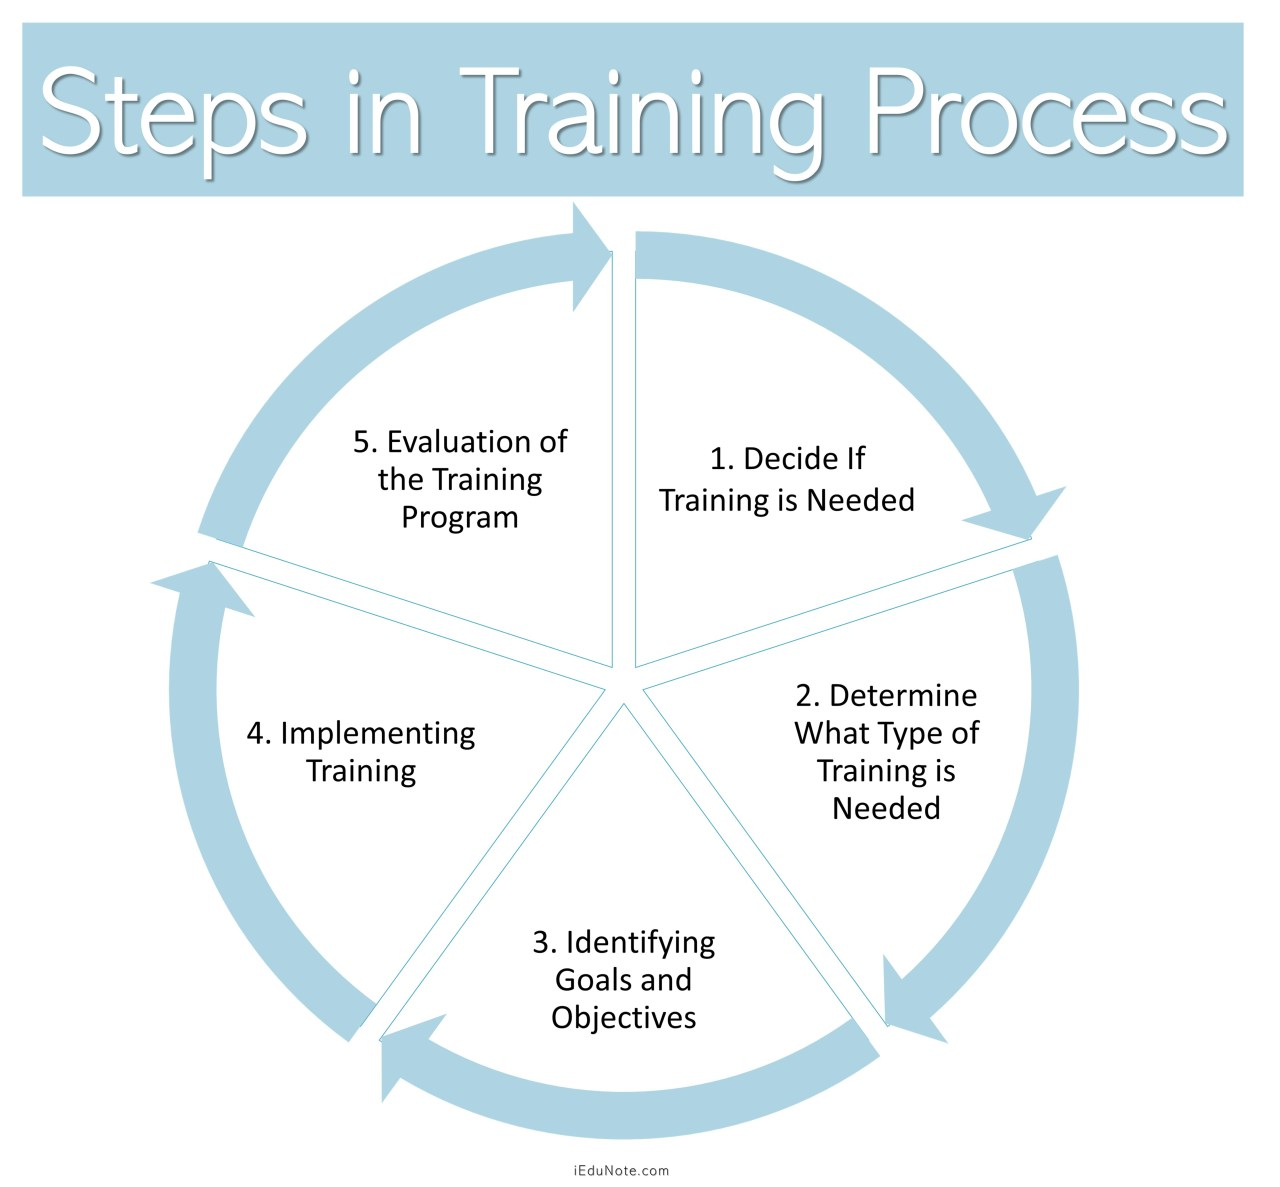 Steps in Training Process/Phases of Training